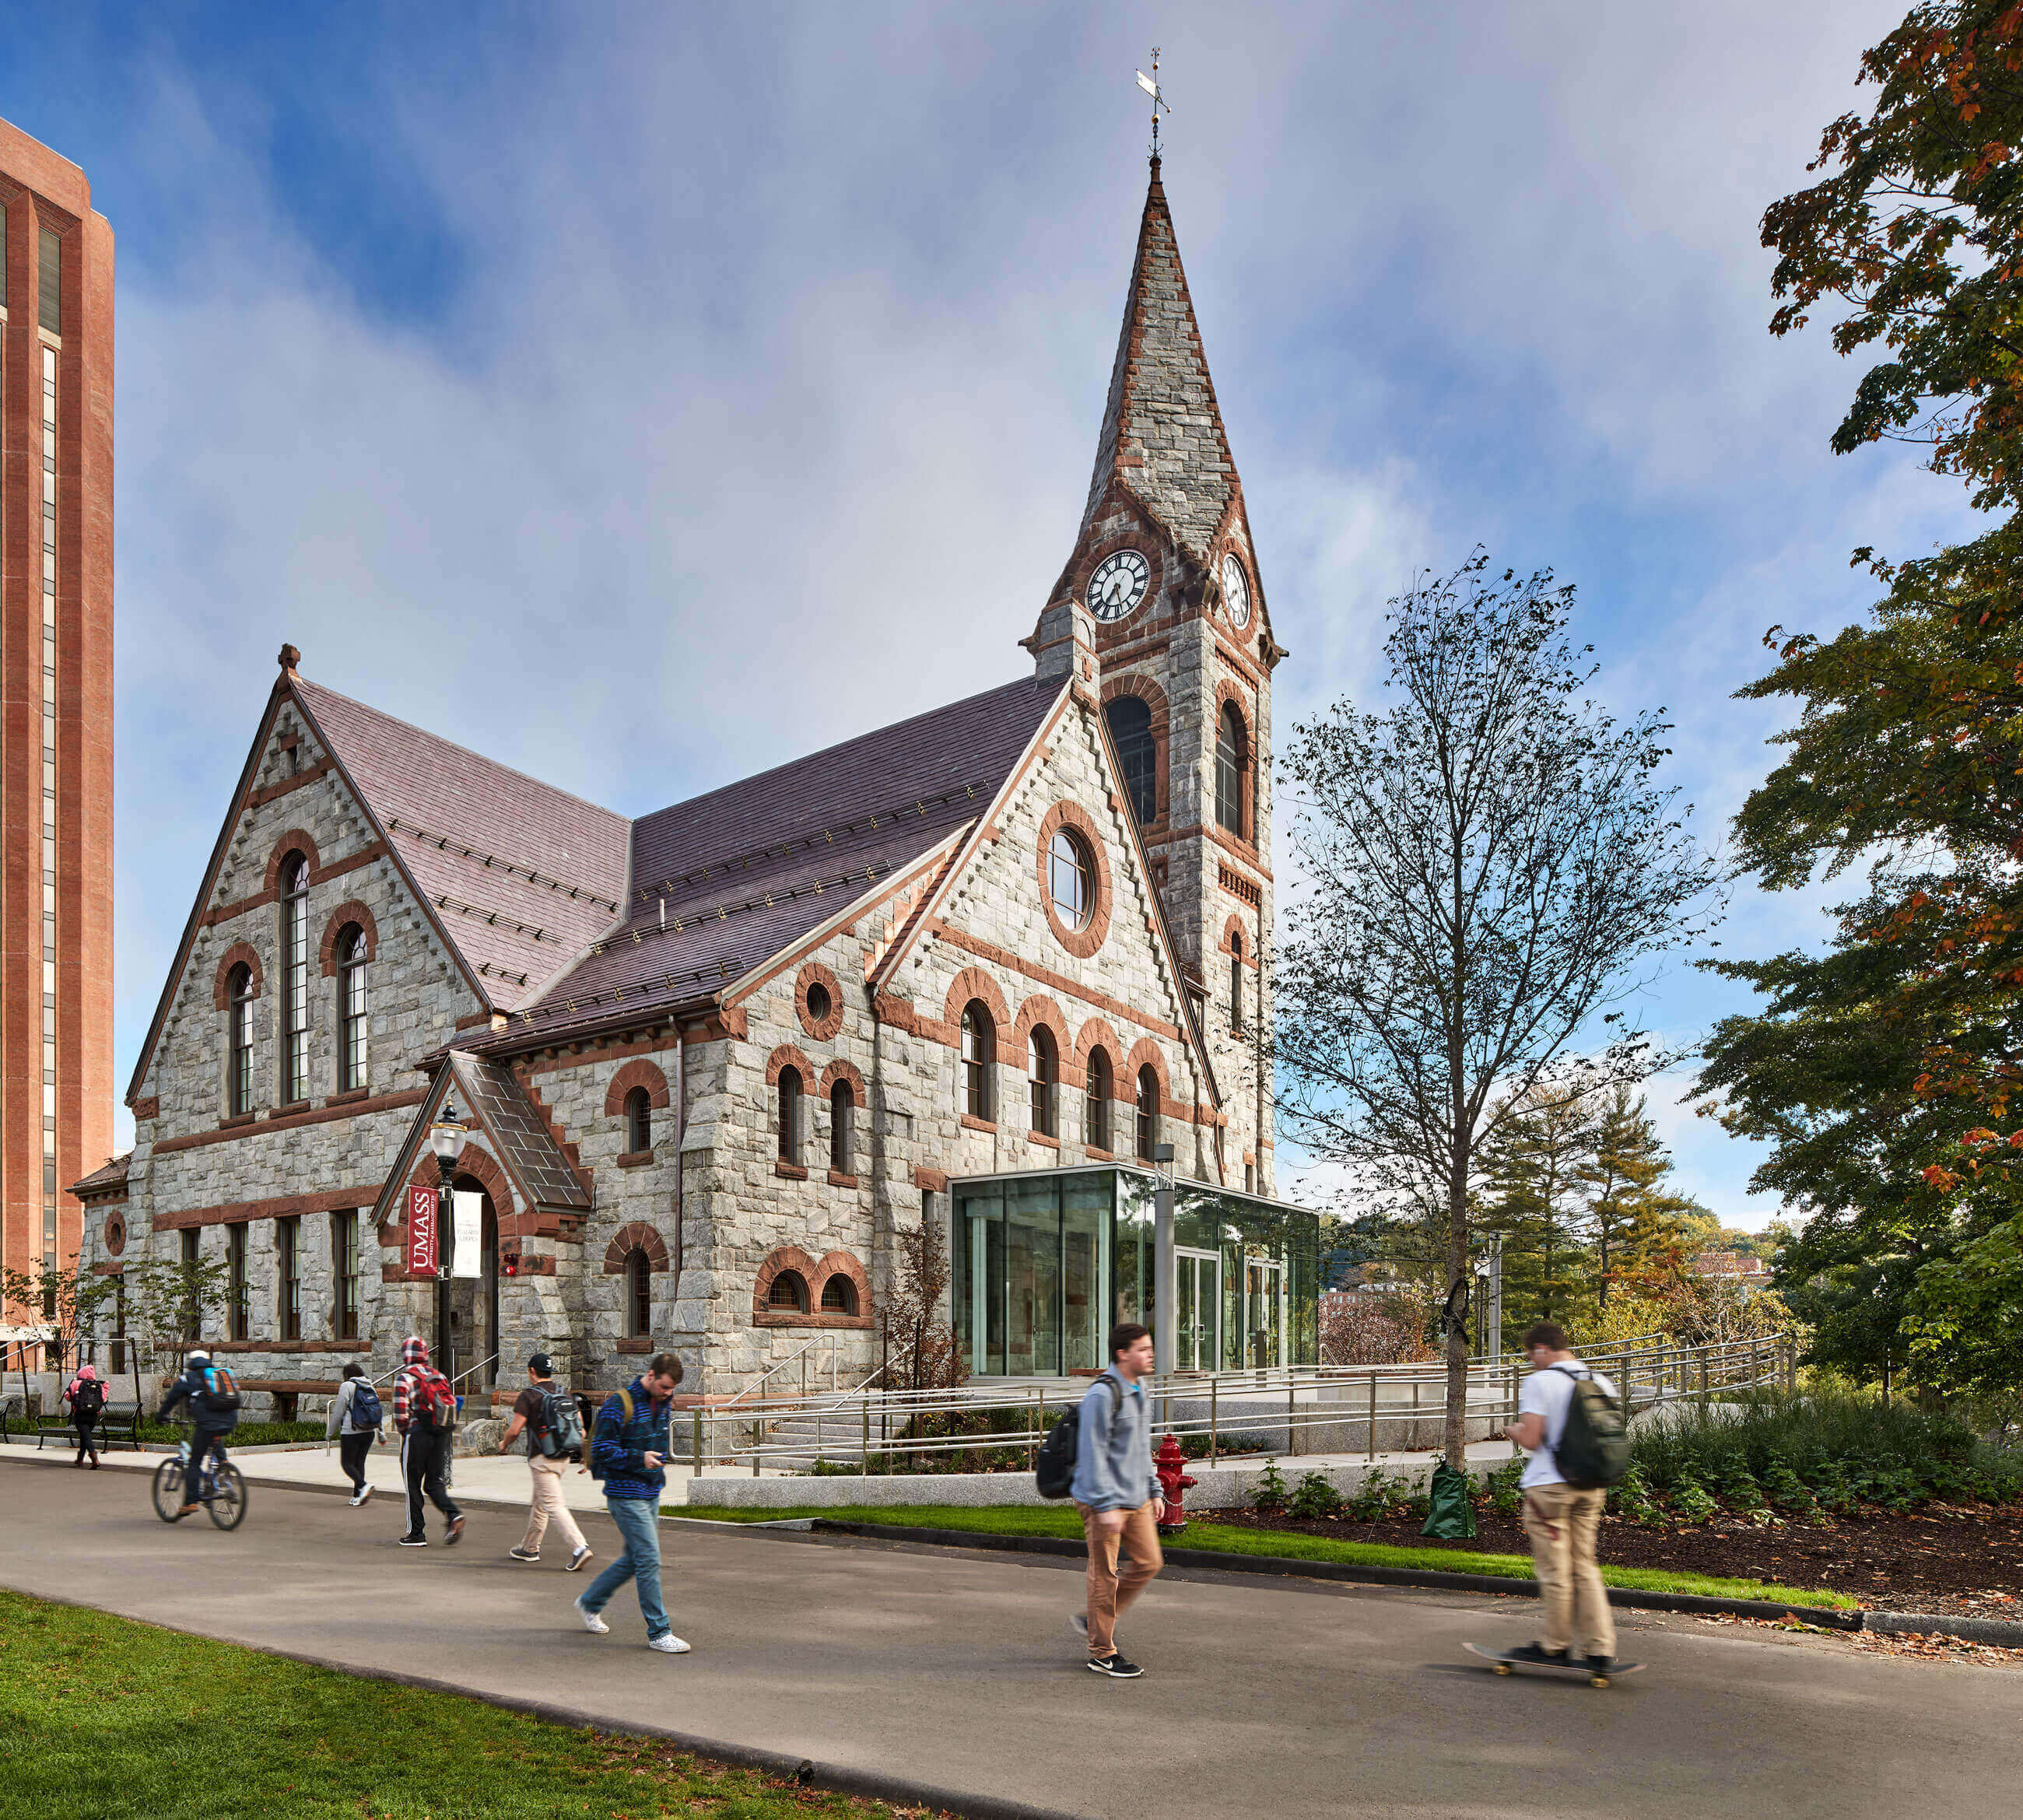 College students walking and skateboarding by new glass accessible entrance the UMass Amherst's Old Chapel.